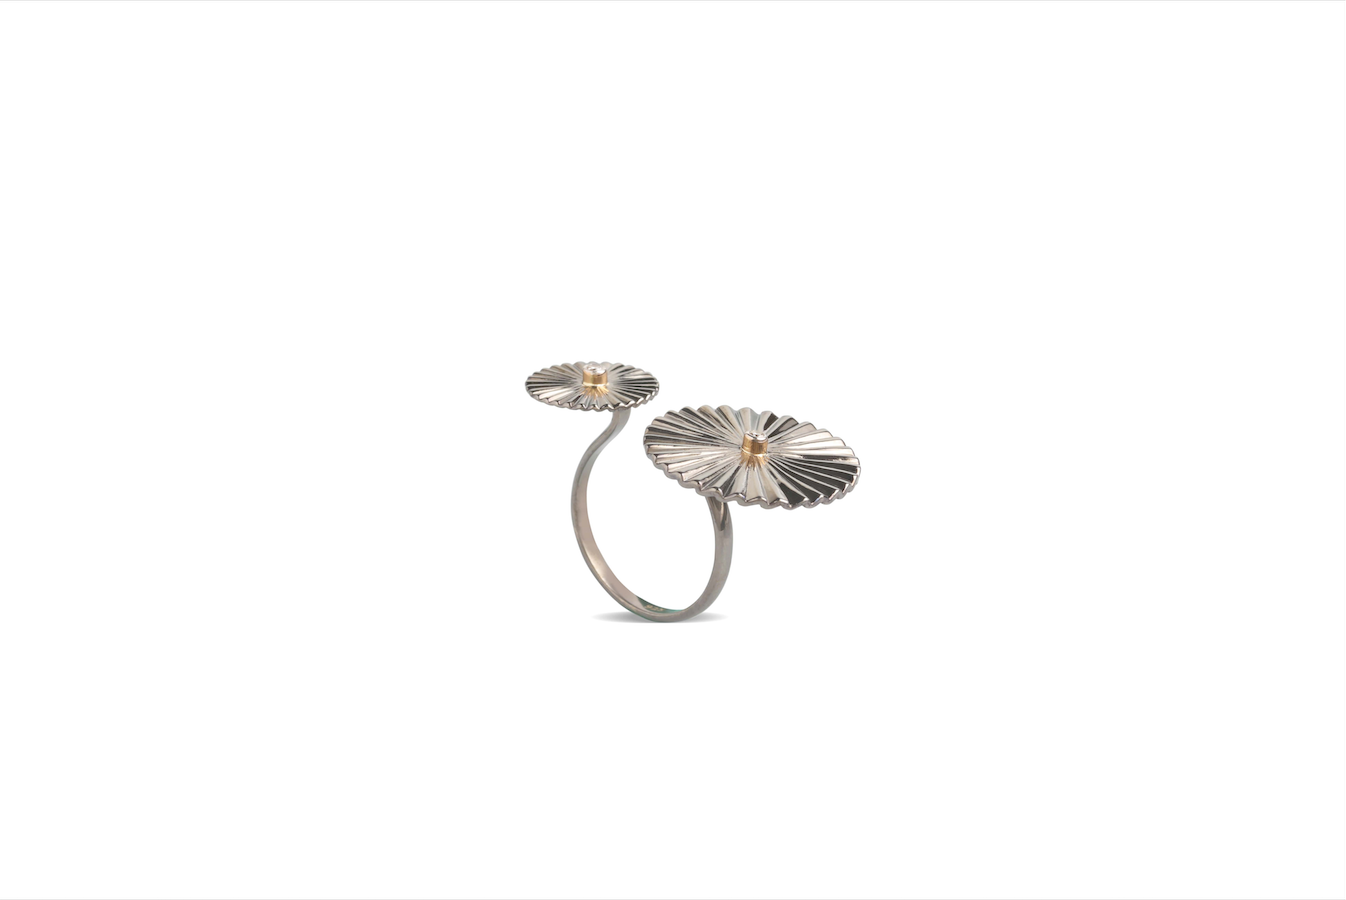 RING 18K YELLOW GOLD AND SILVER WITH FVVS1 DIAMOND